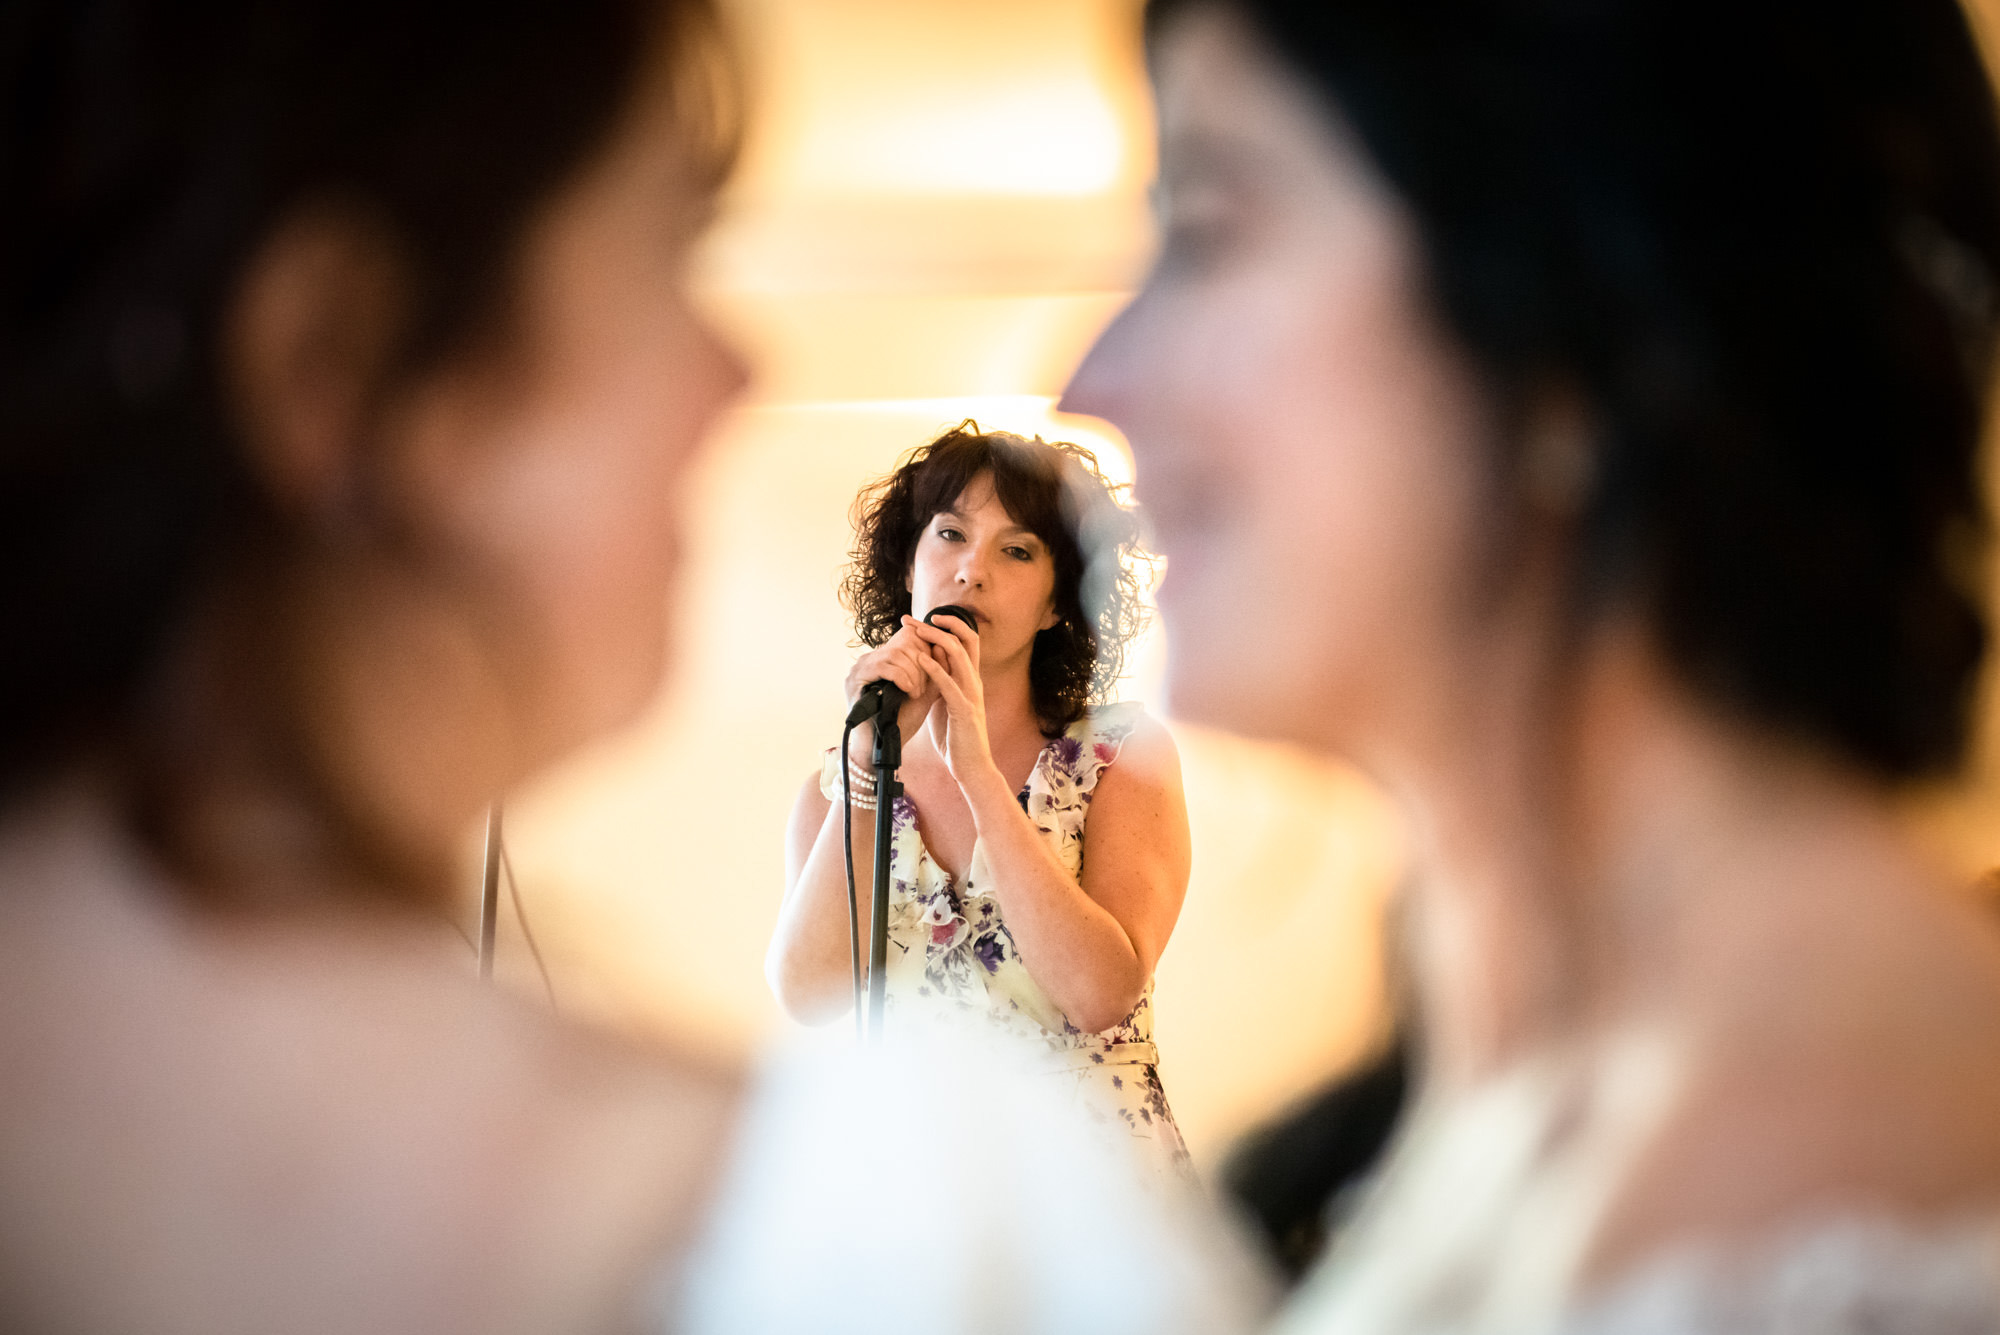 A friend singing for the brides